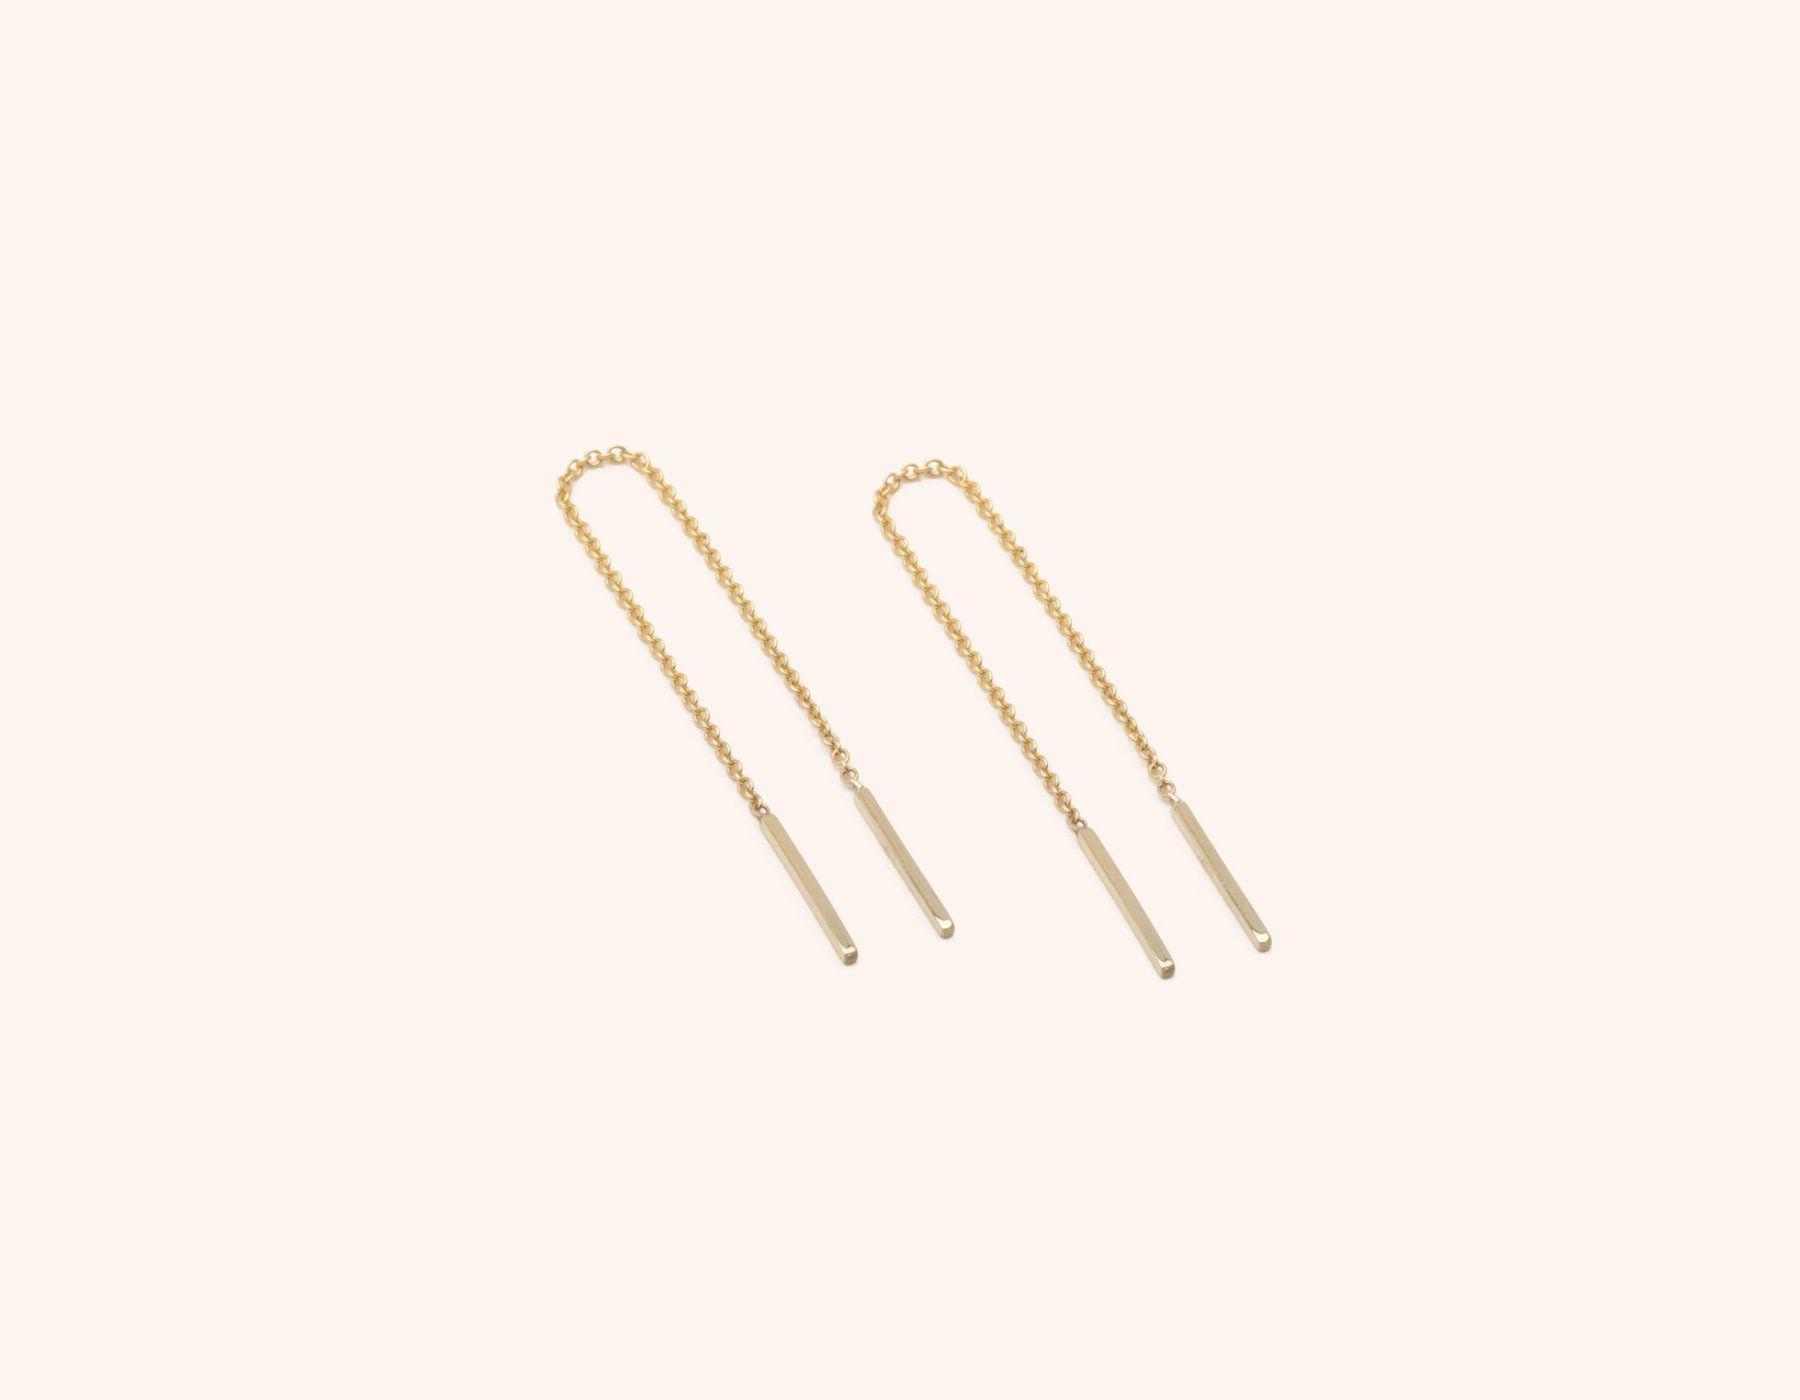 d0350ebe836f30 Vrai & Oro dainty minimalist 14K Solid Gold Line Threader Chain Earrings,  14K Yellow Gold